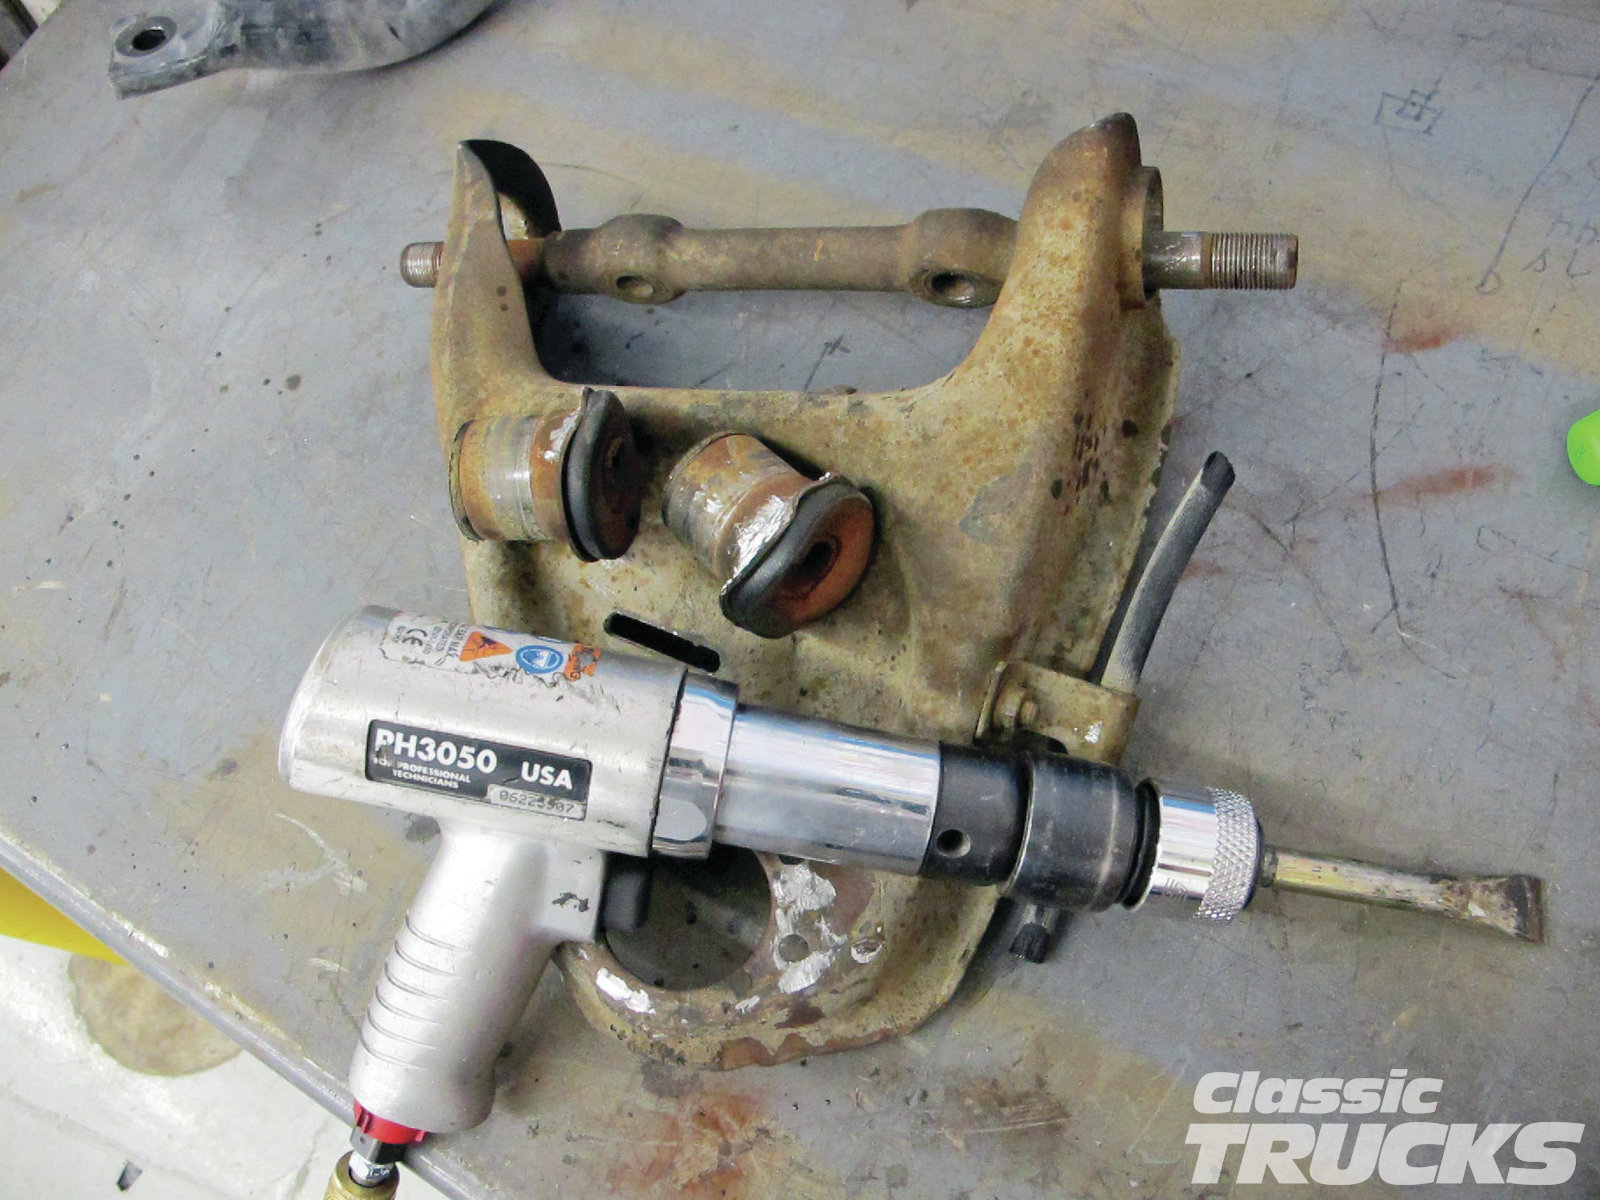 08. I used an air hammer to remove the upper and lower control arm bushings